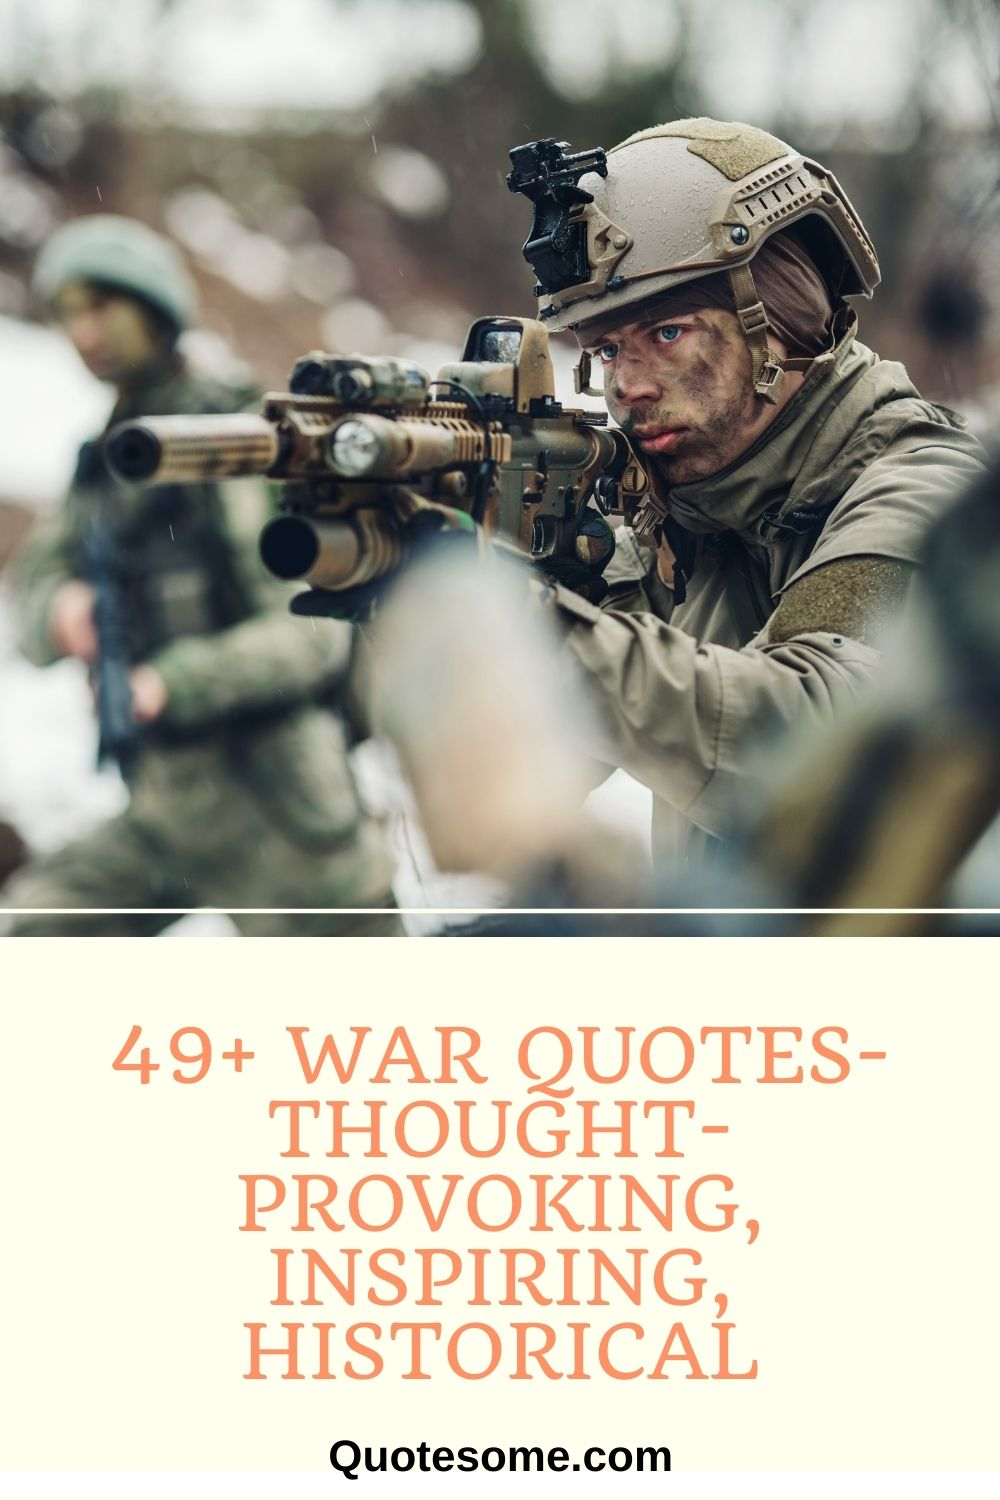 19+ WAR QUOTES- THOUGHT-PROVOKING, INSPIRING, HISTORICAL